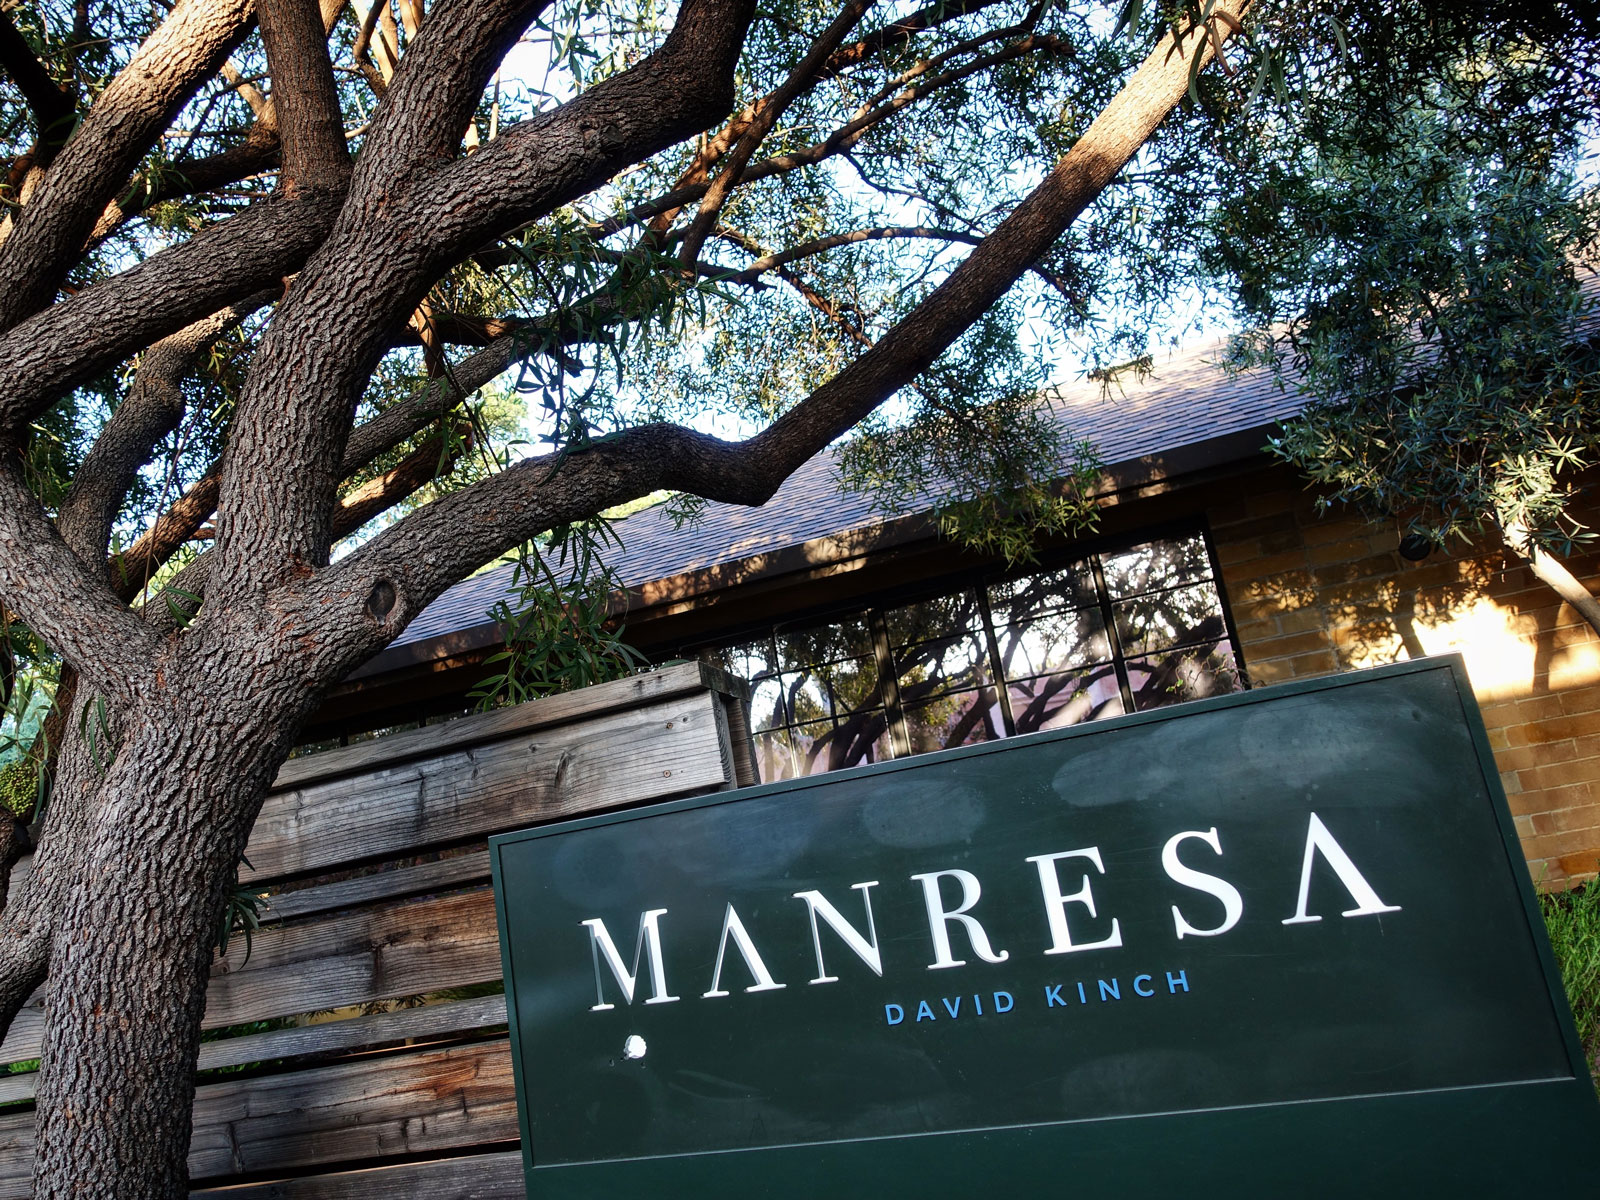 From Manresa to the New Mentone, David Kinch Looks Ahead After Another Fire